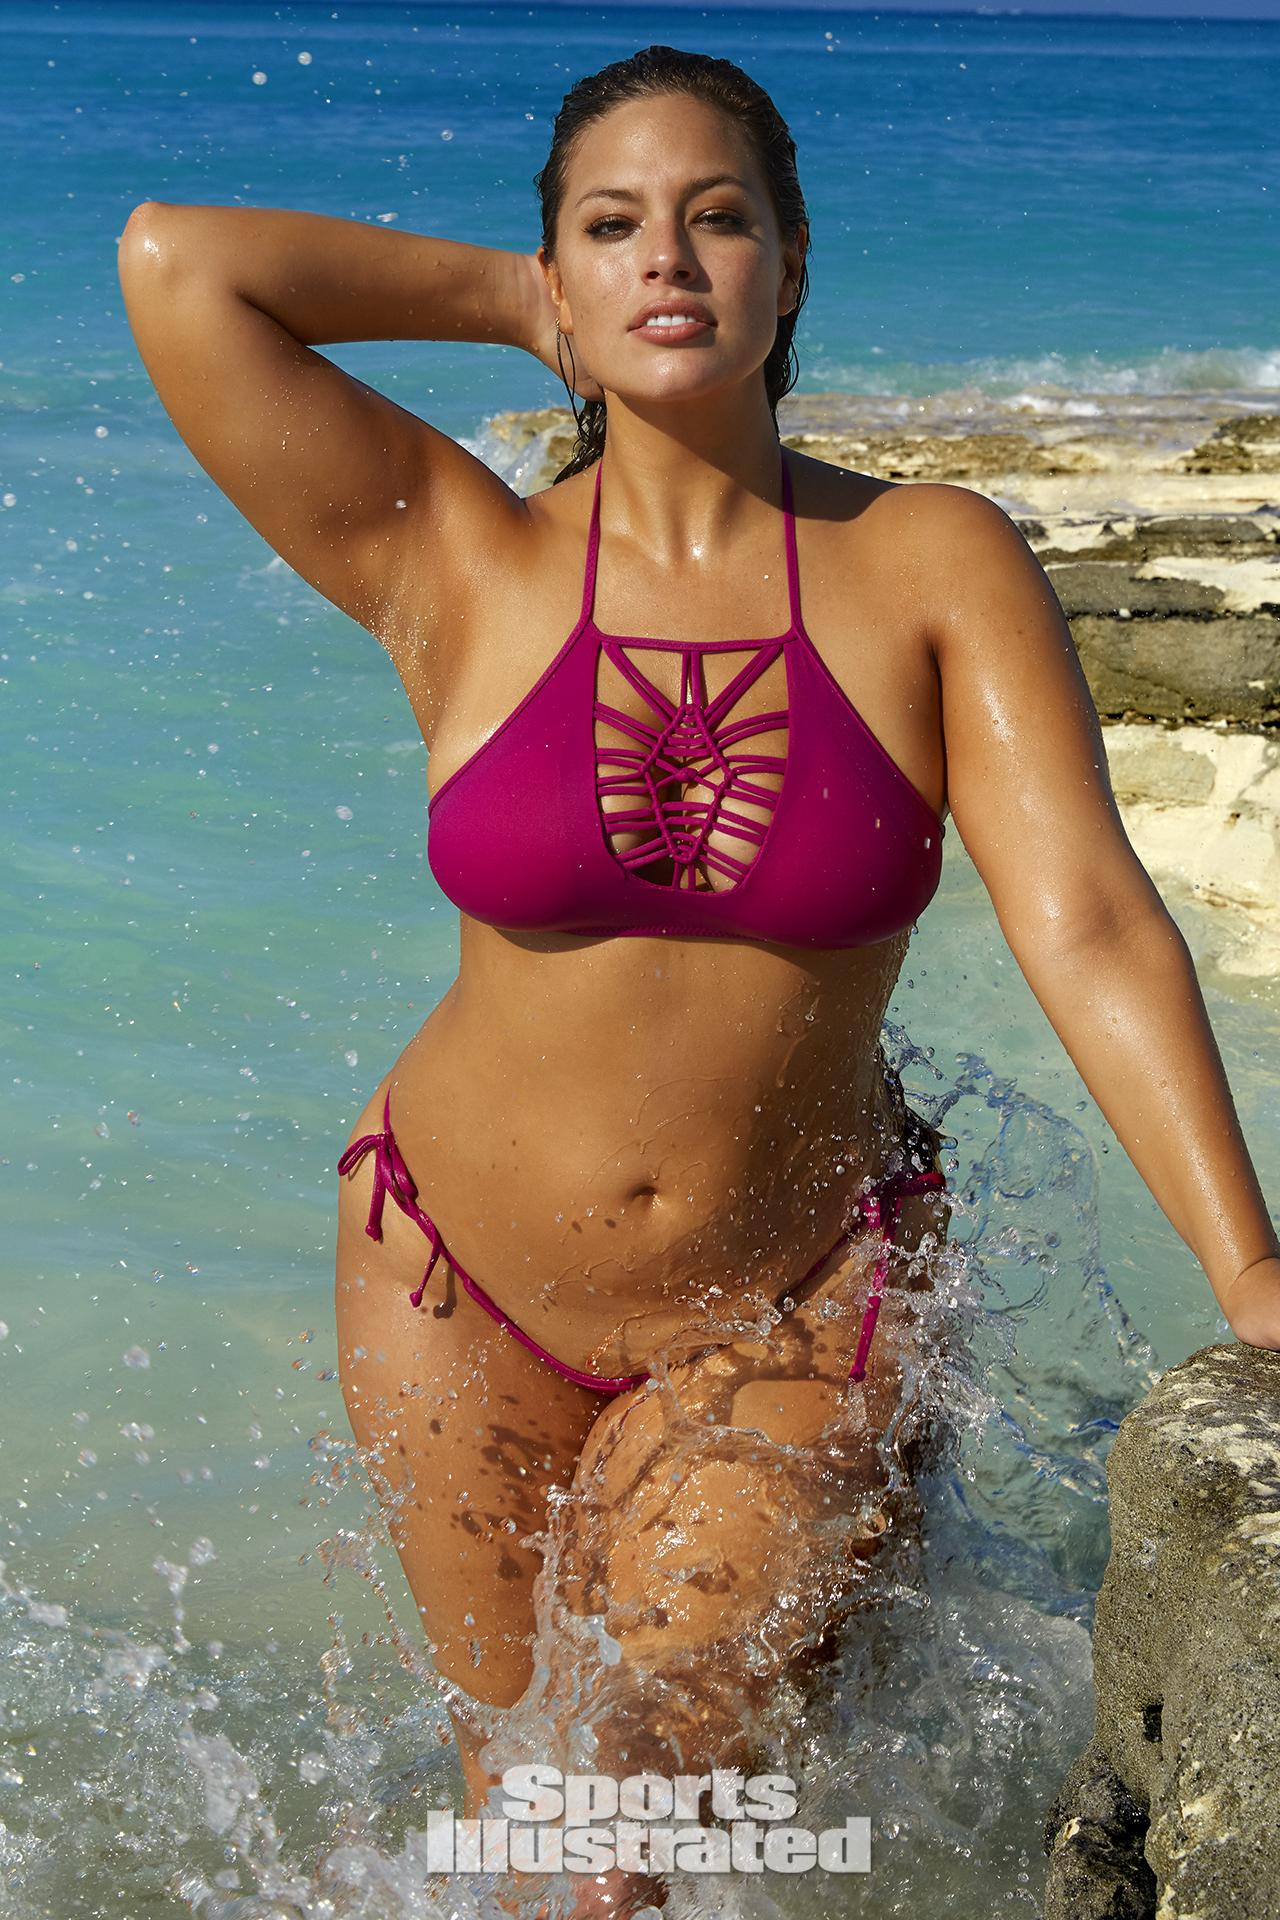 Opinion Plus size sports illustrated swimsuit model shall afford